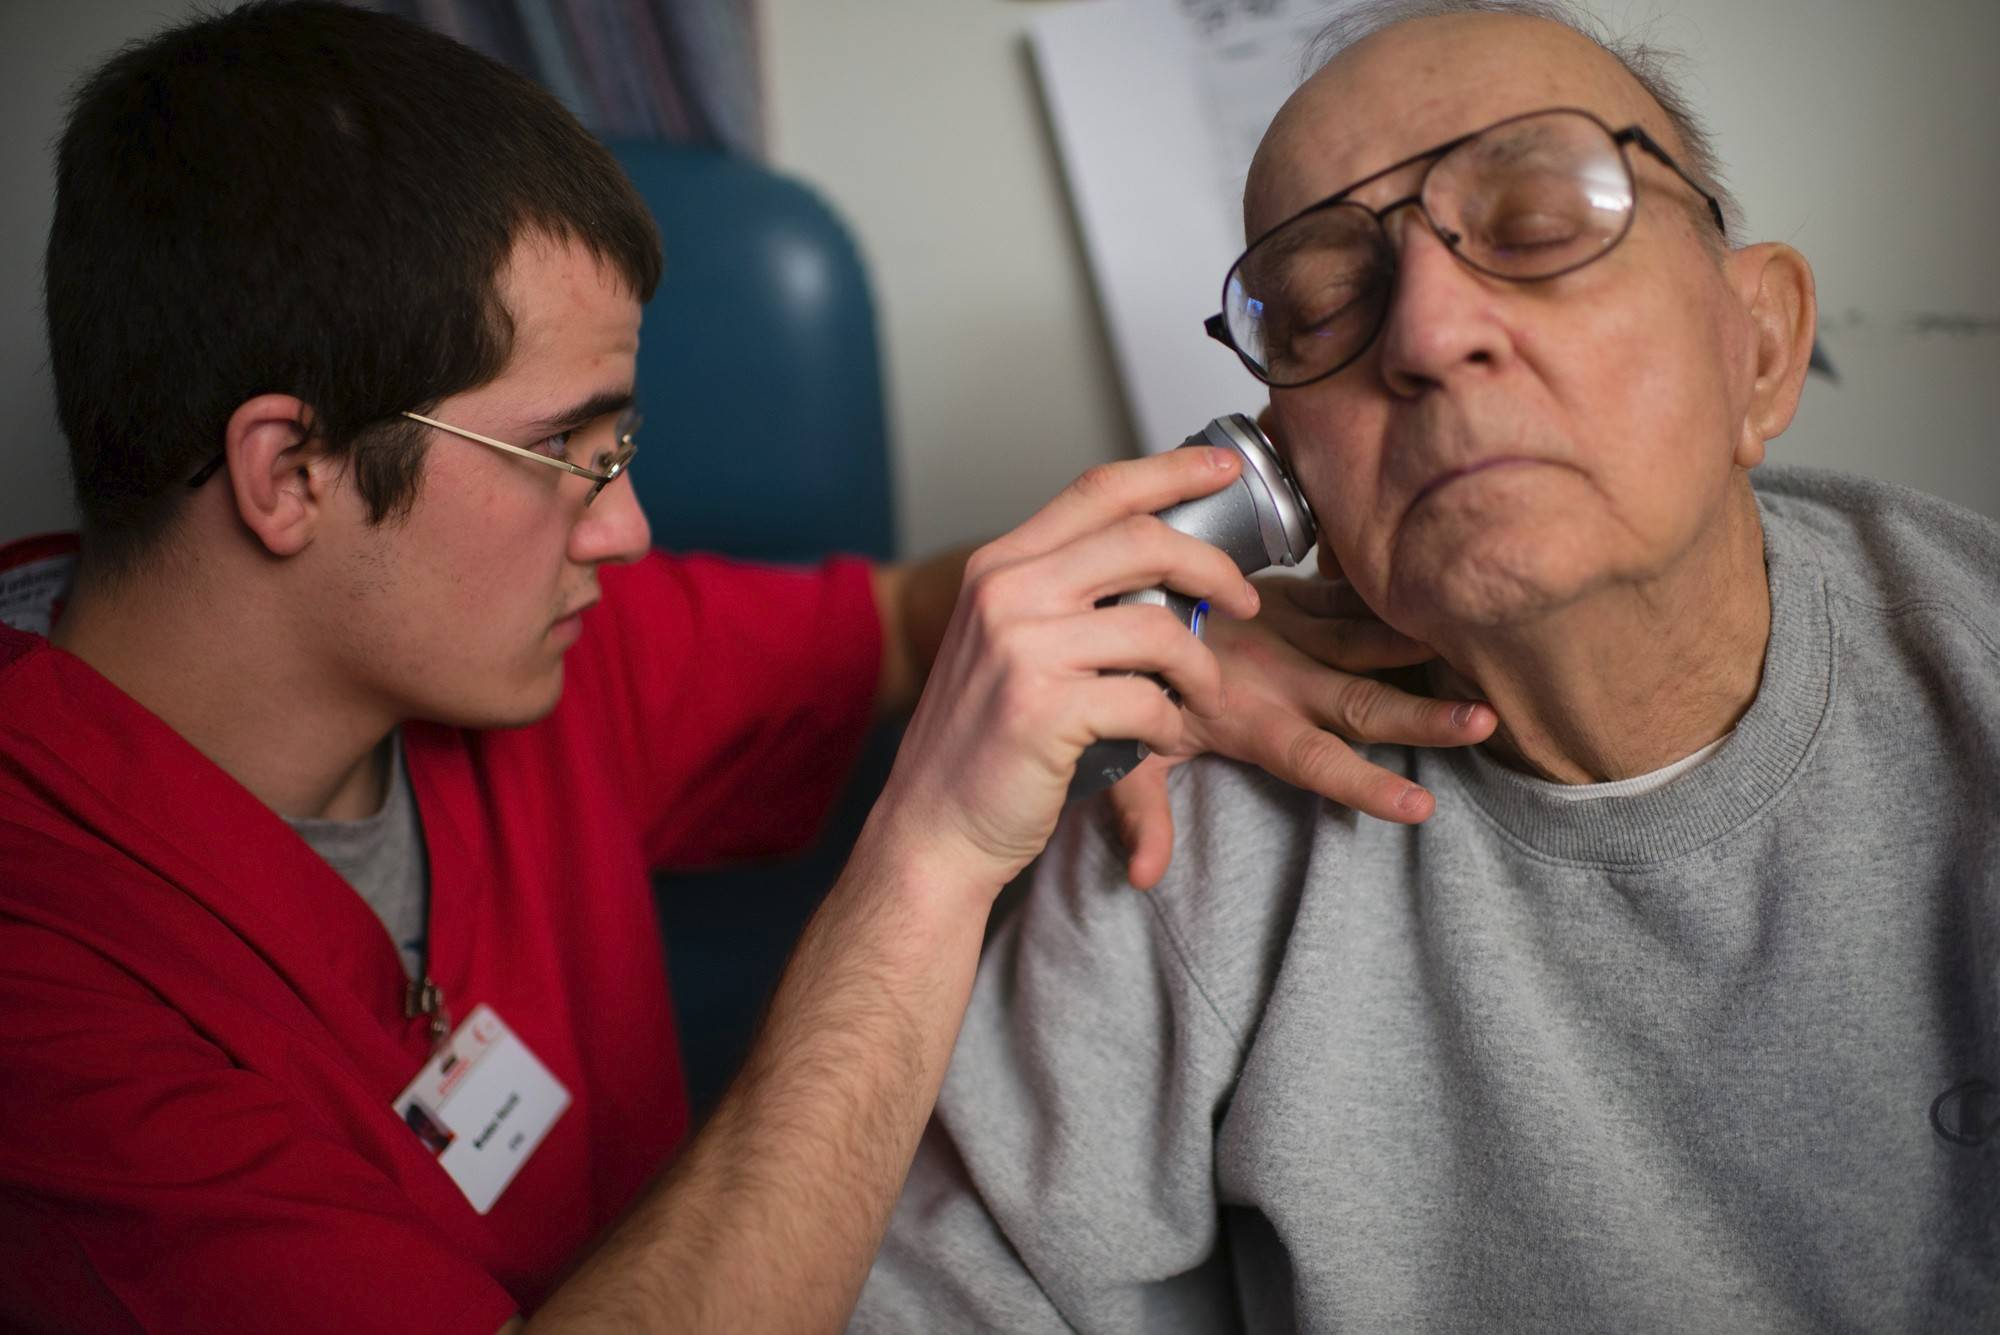 Braden Hewitt shaves John Childress during student training with residents of the Harmar Place nursing home in Marietta, Ohio.